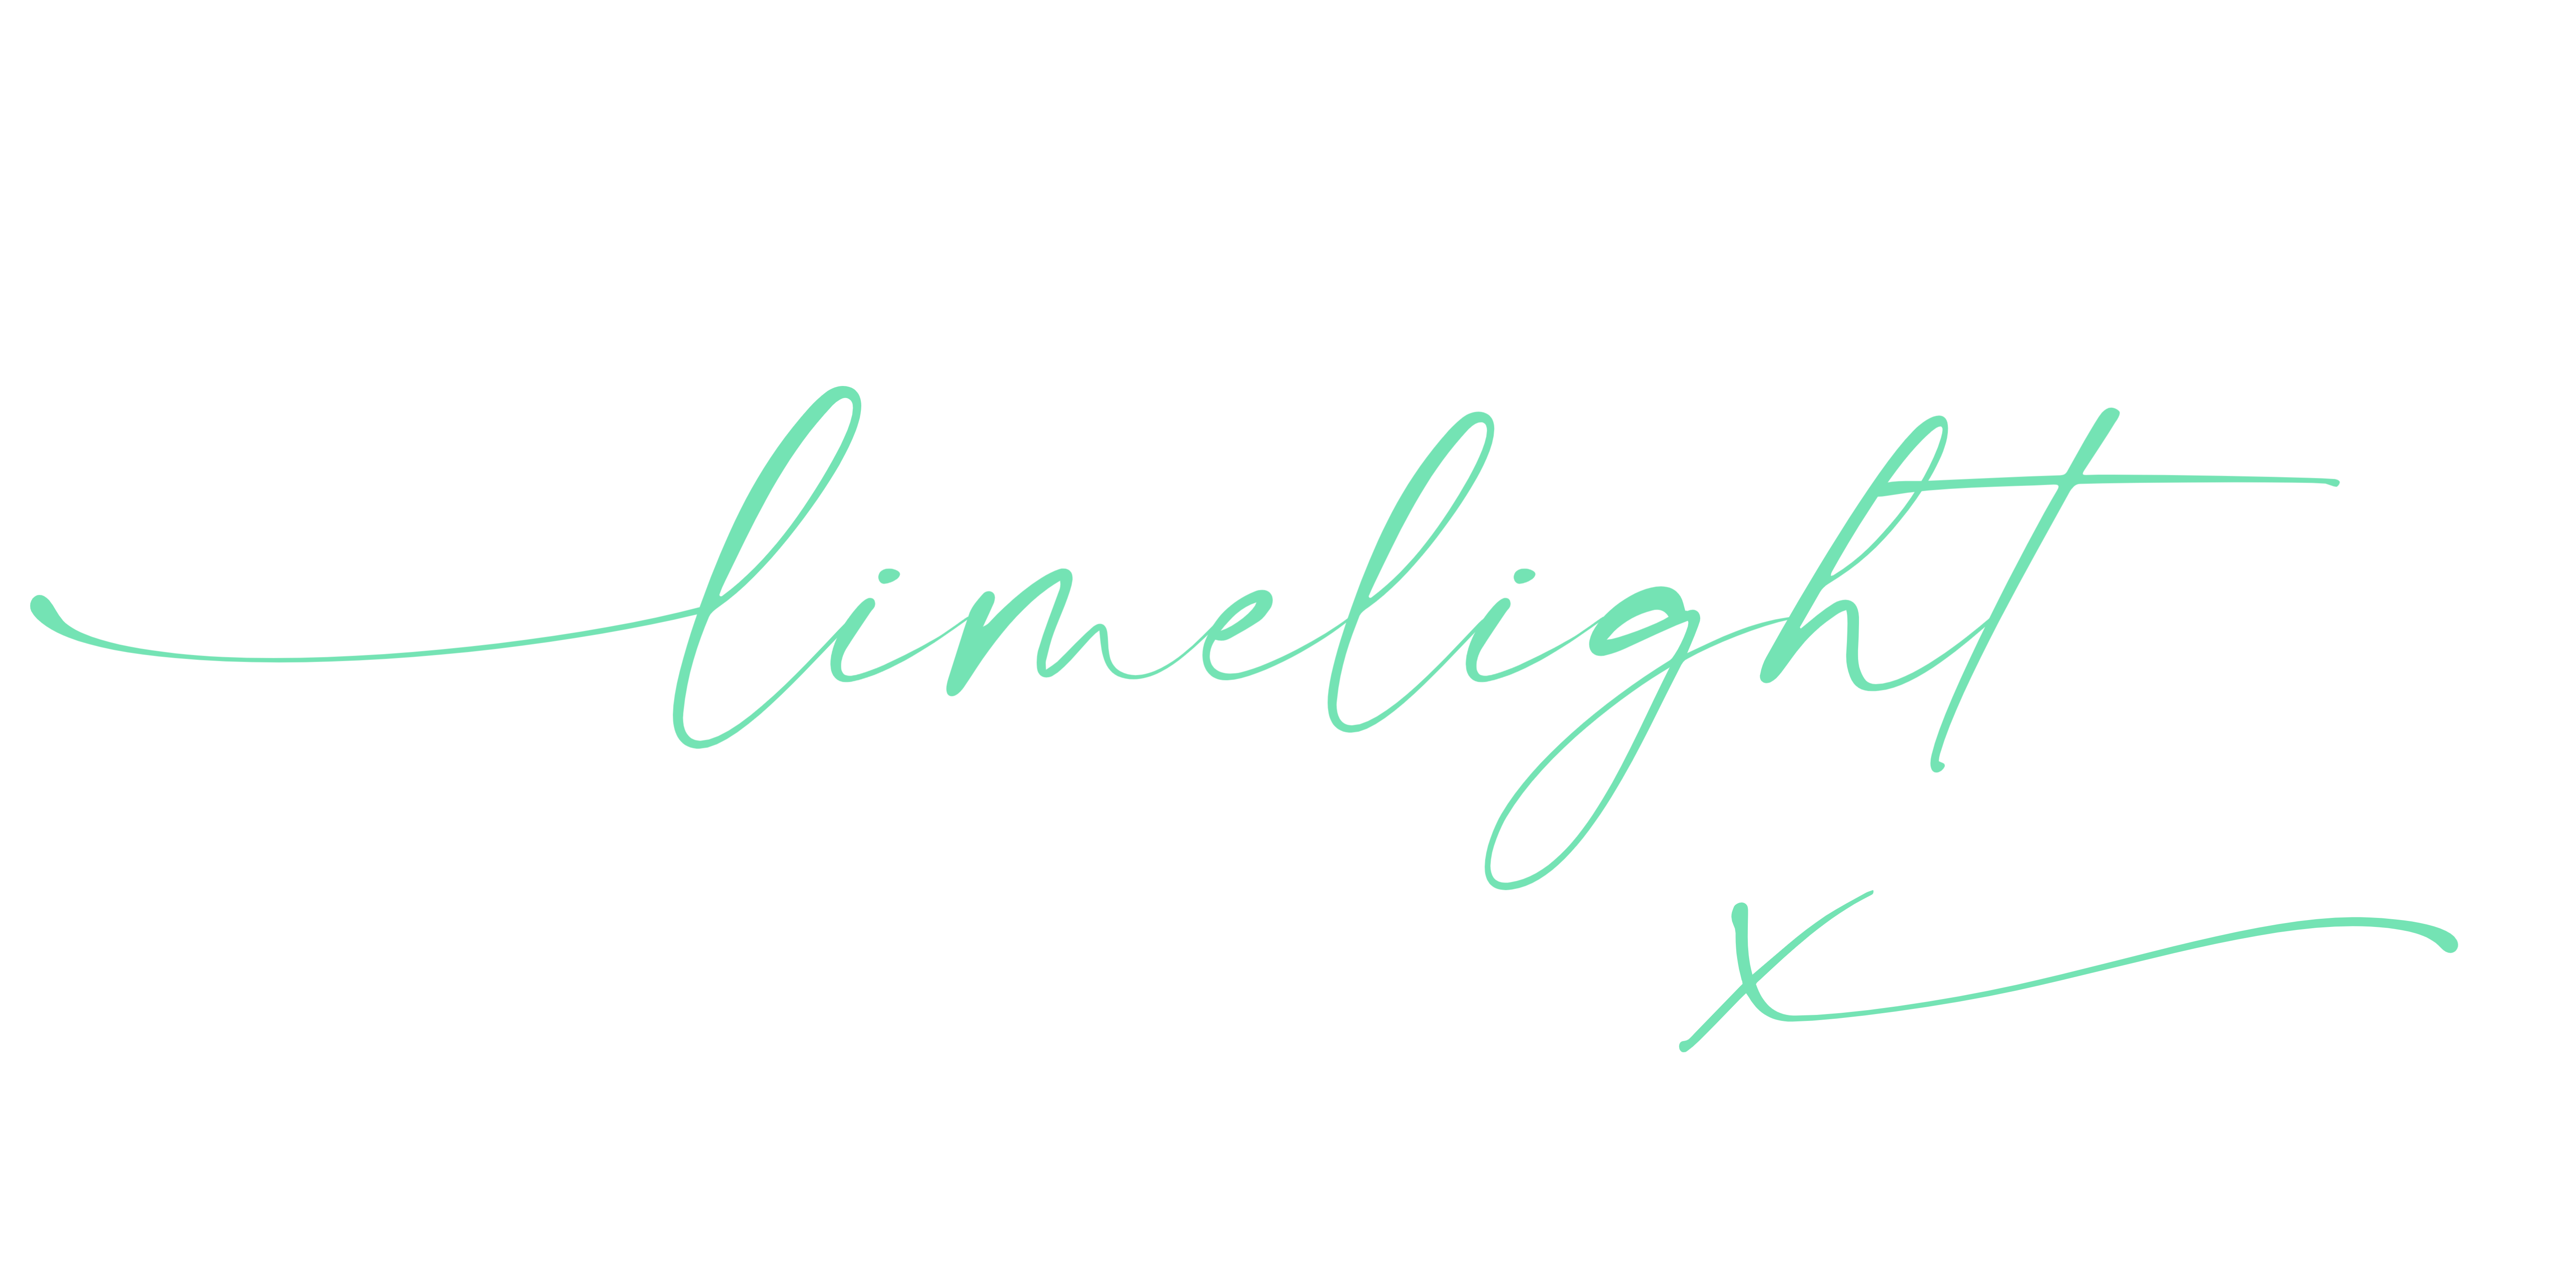 Logo of Limelight Copy & Creative in Mint Green to head up website homepage.